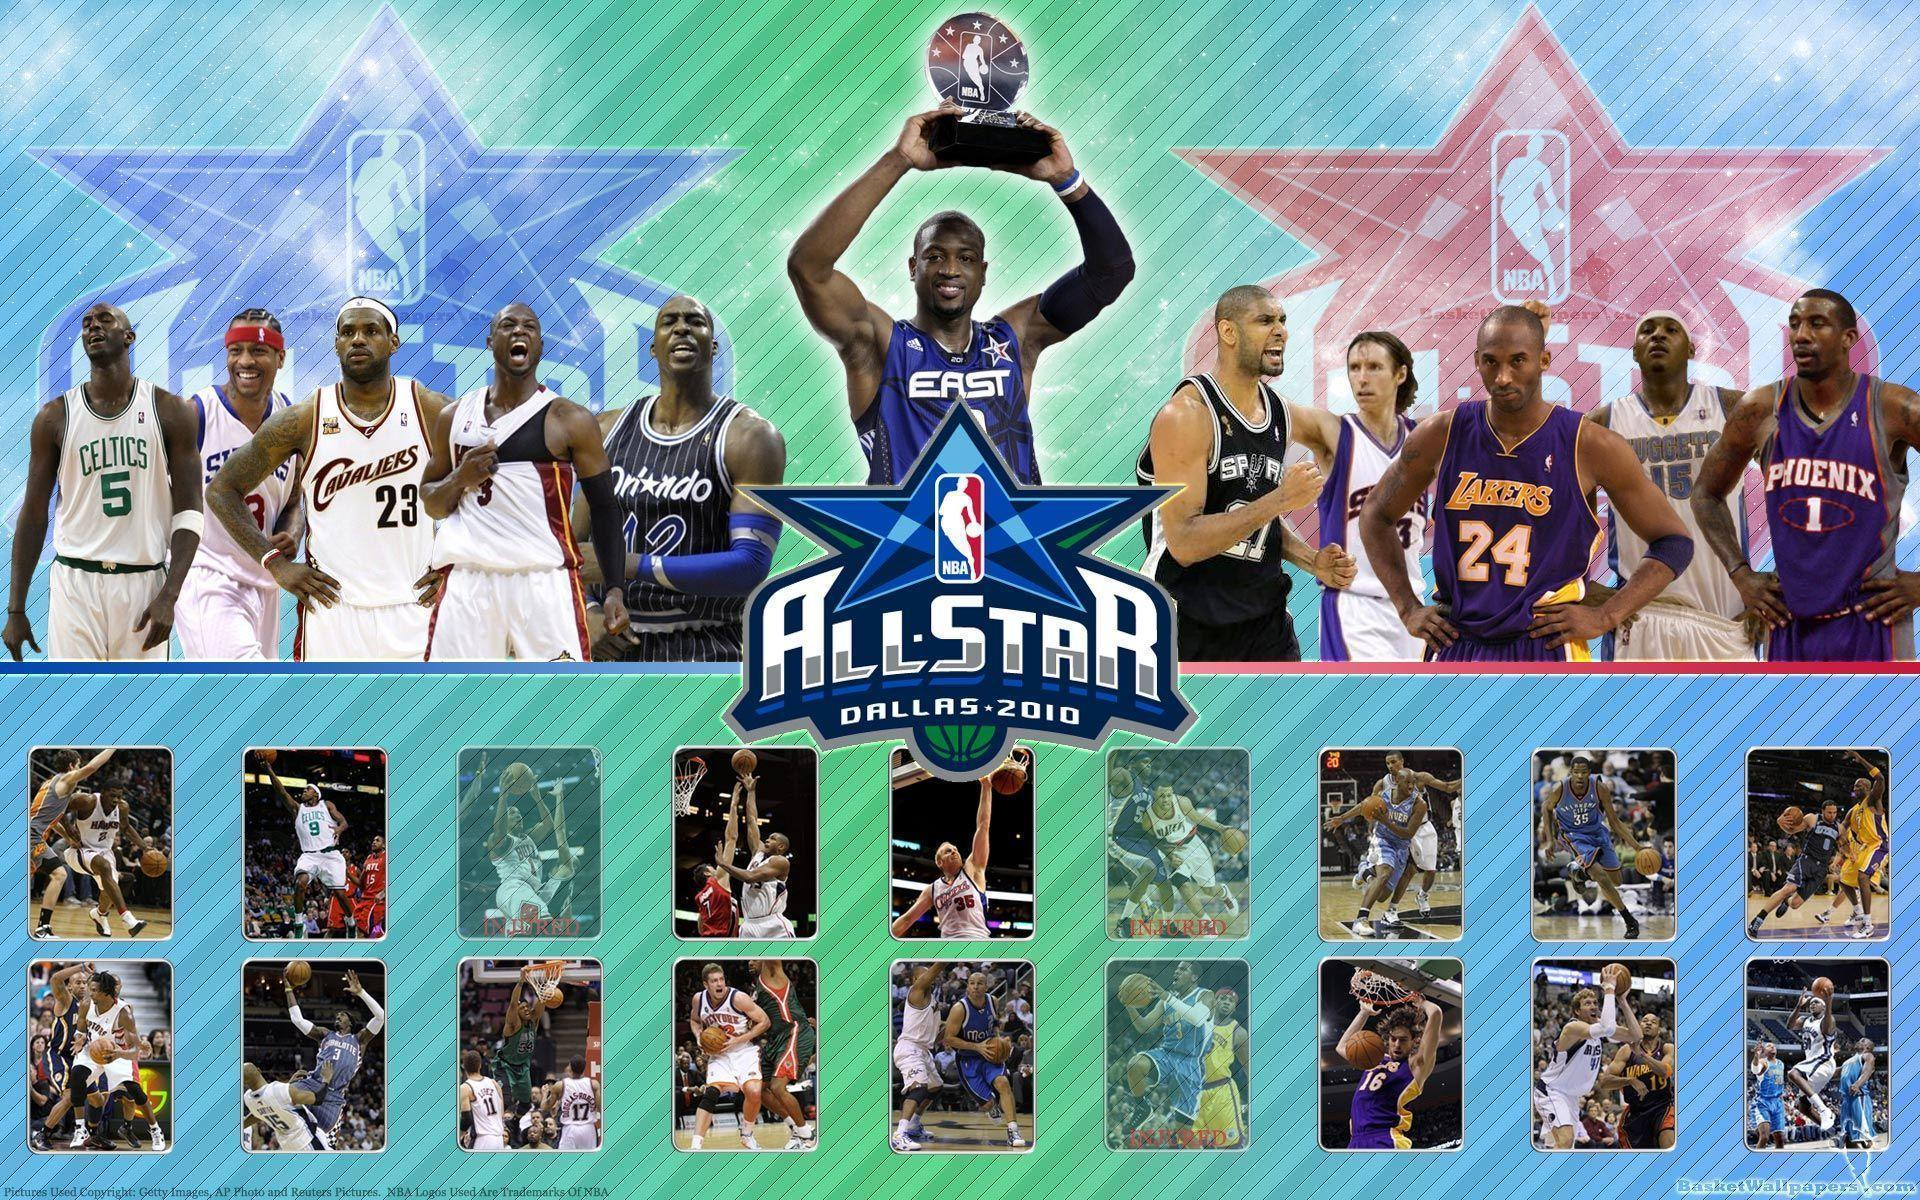 Nba Wallpapers 2015 New - WallpaperSafari